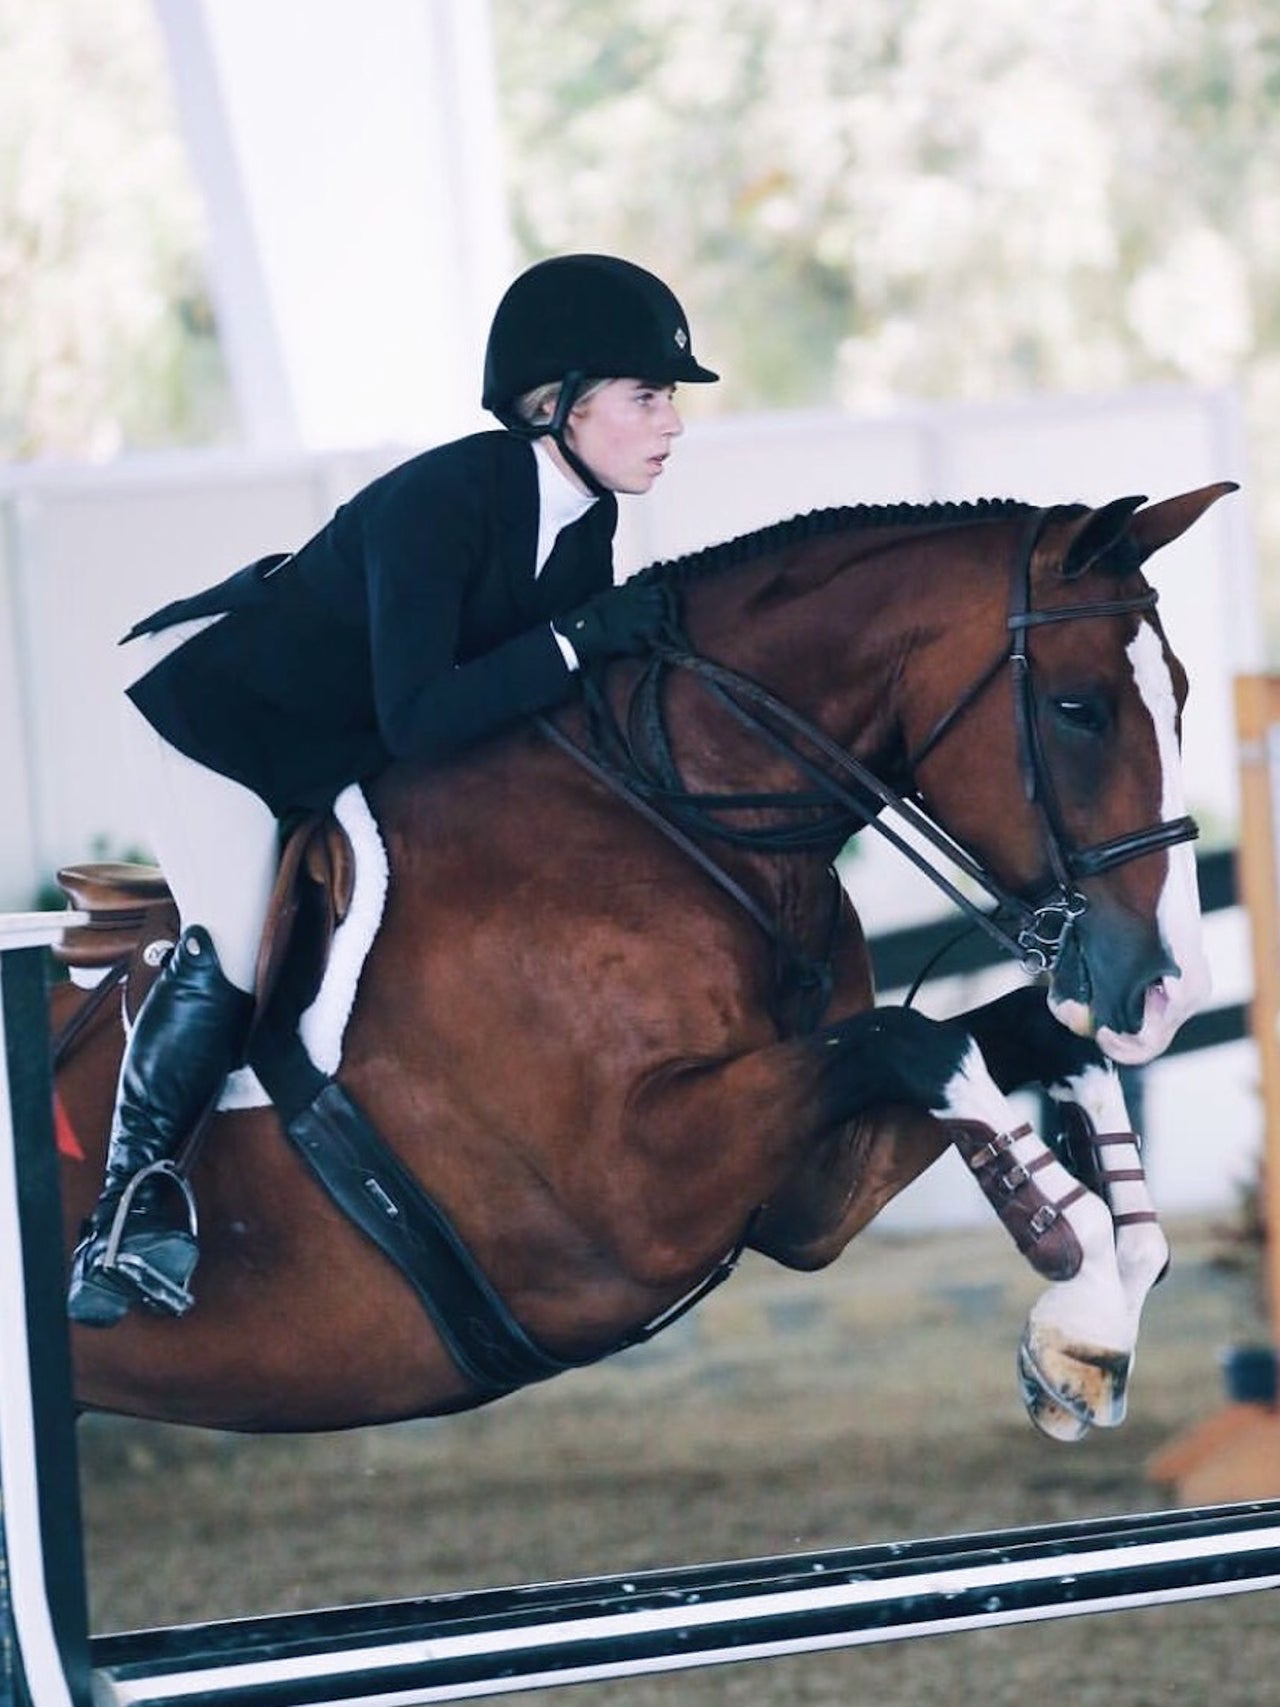 The Fit Equestrian - Fitness programs tailored to the equestrian athlete.